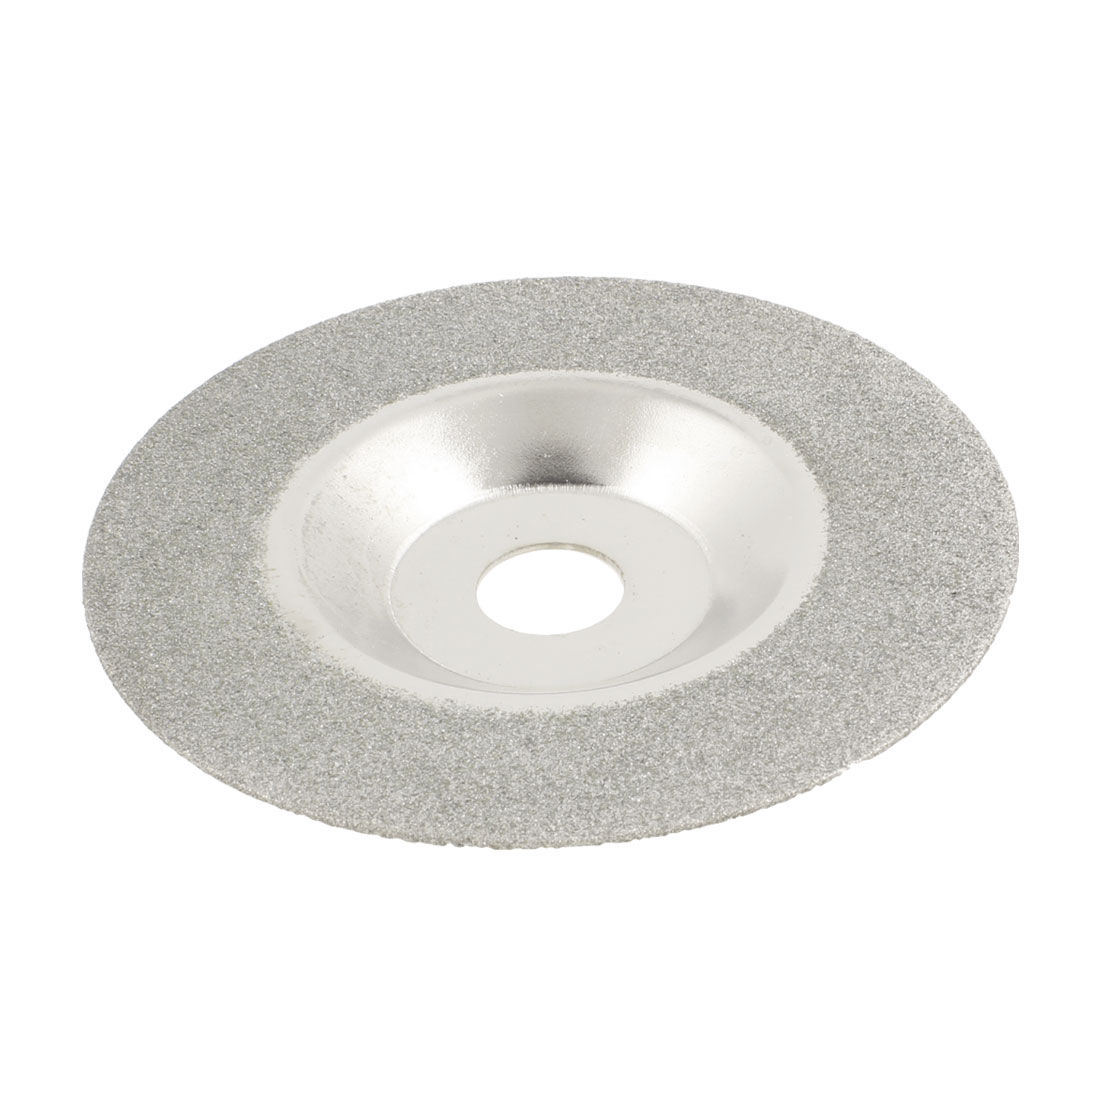 Diamond Saw Slice Grinding Cup Wheel 100mm x 15mm x 1.2mm Silver Tone